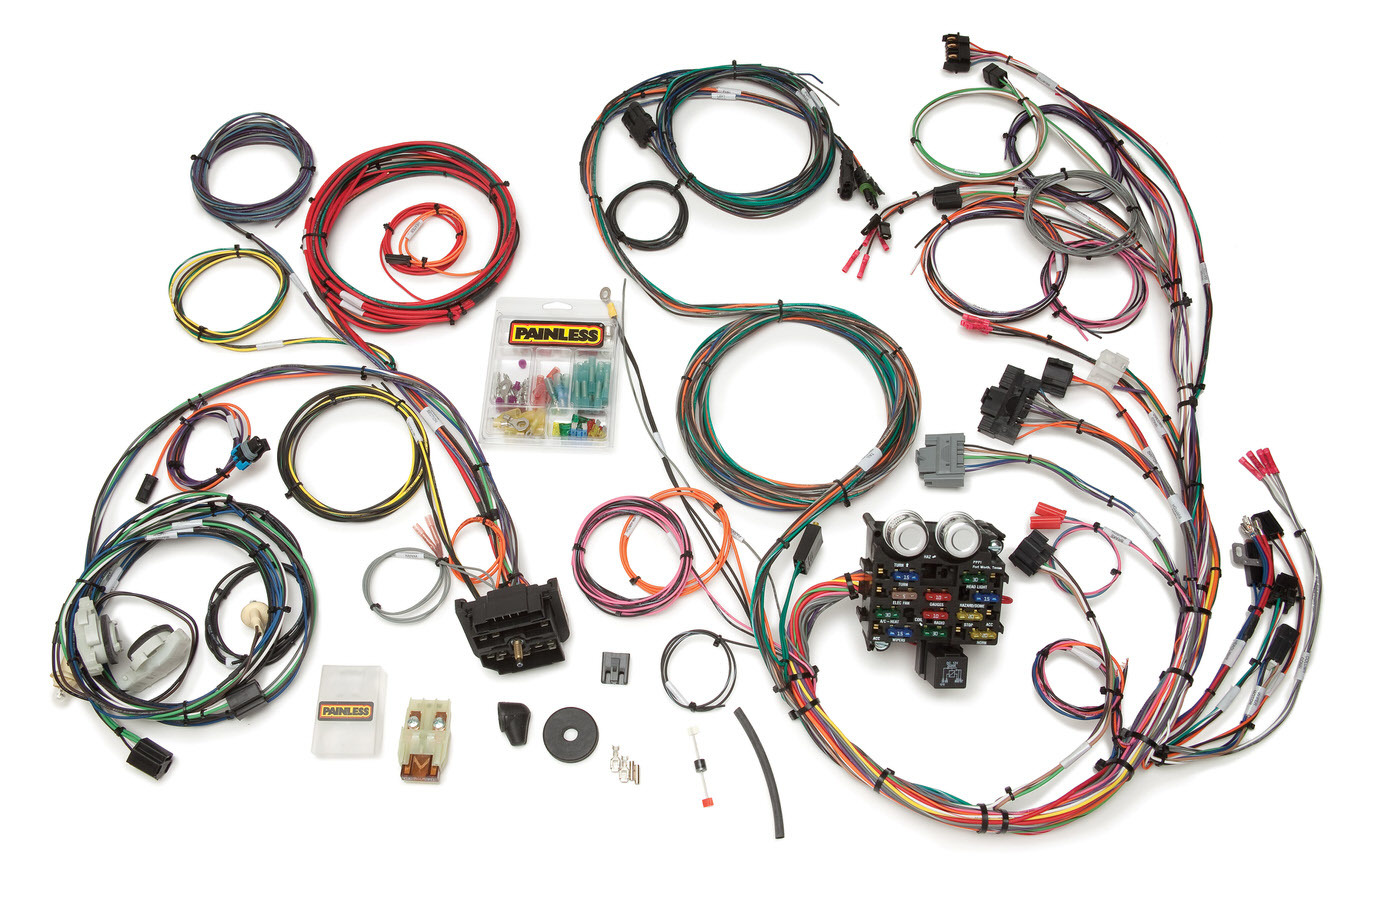 Painless Wiring 10111 Car Wiring Harness, Direct Fit, Complete, 23 Circuit, Jeep YJ 1987-91, Kit